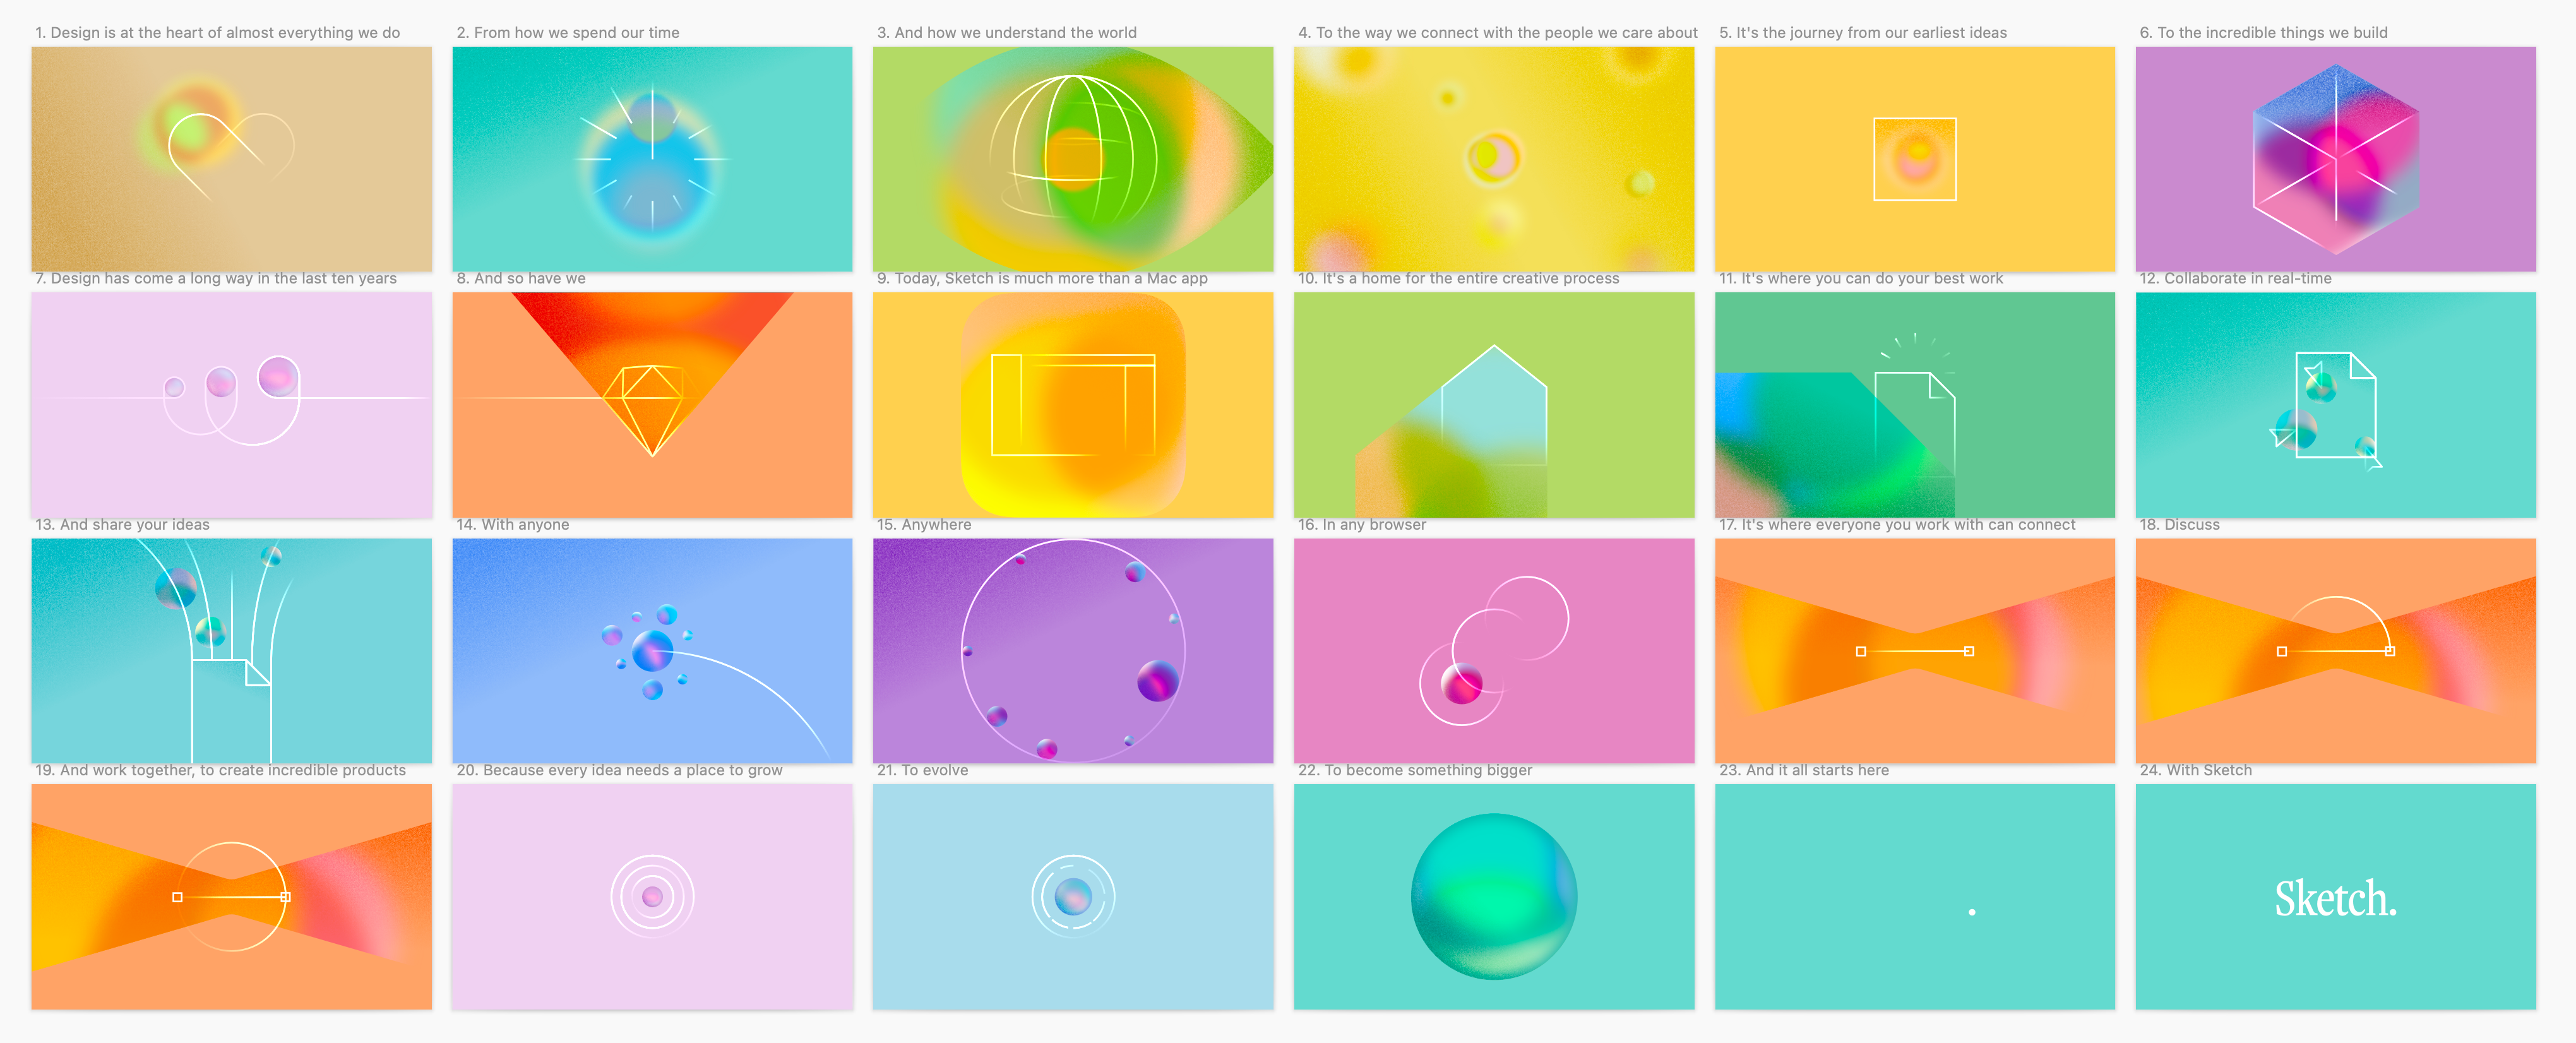 A storyboard of the final idea made in Sketch. Each frame uses a different, bright colored background.